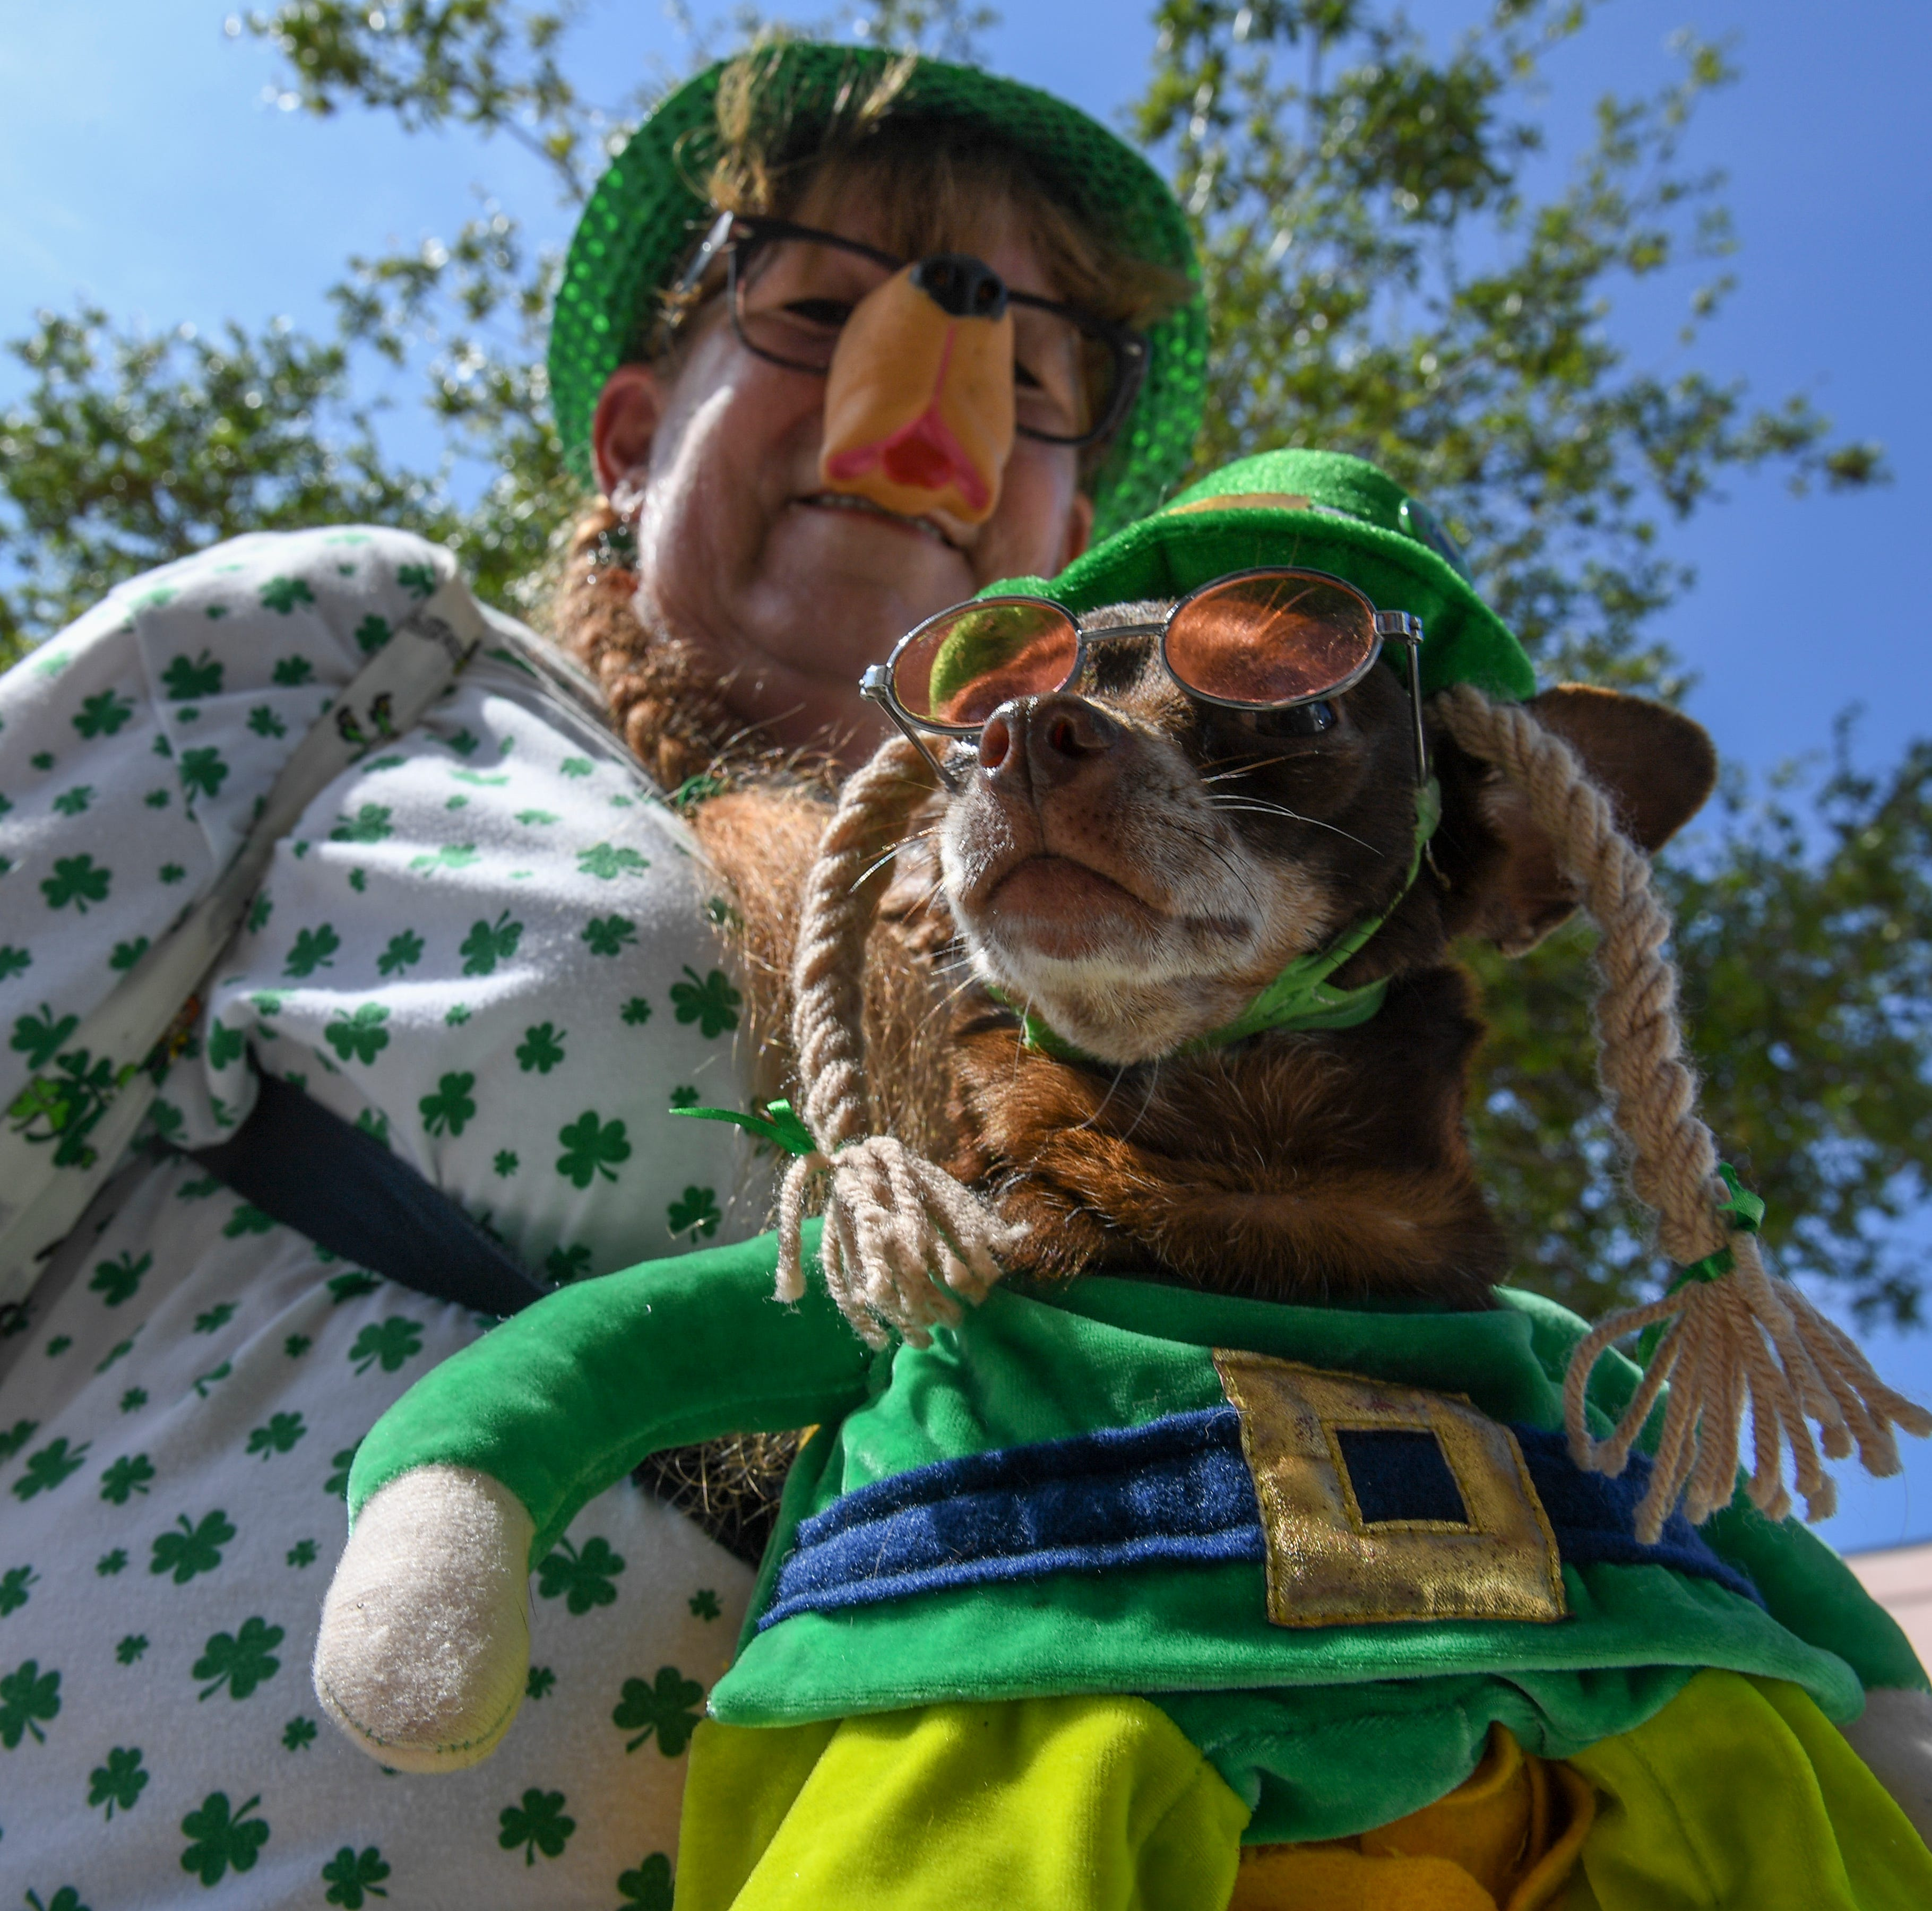 St. Patrick's Day parties, ShrimpFest, craft beer, surfing contest top events this weekend